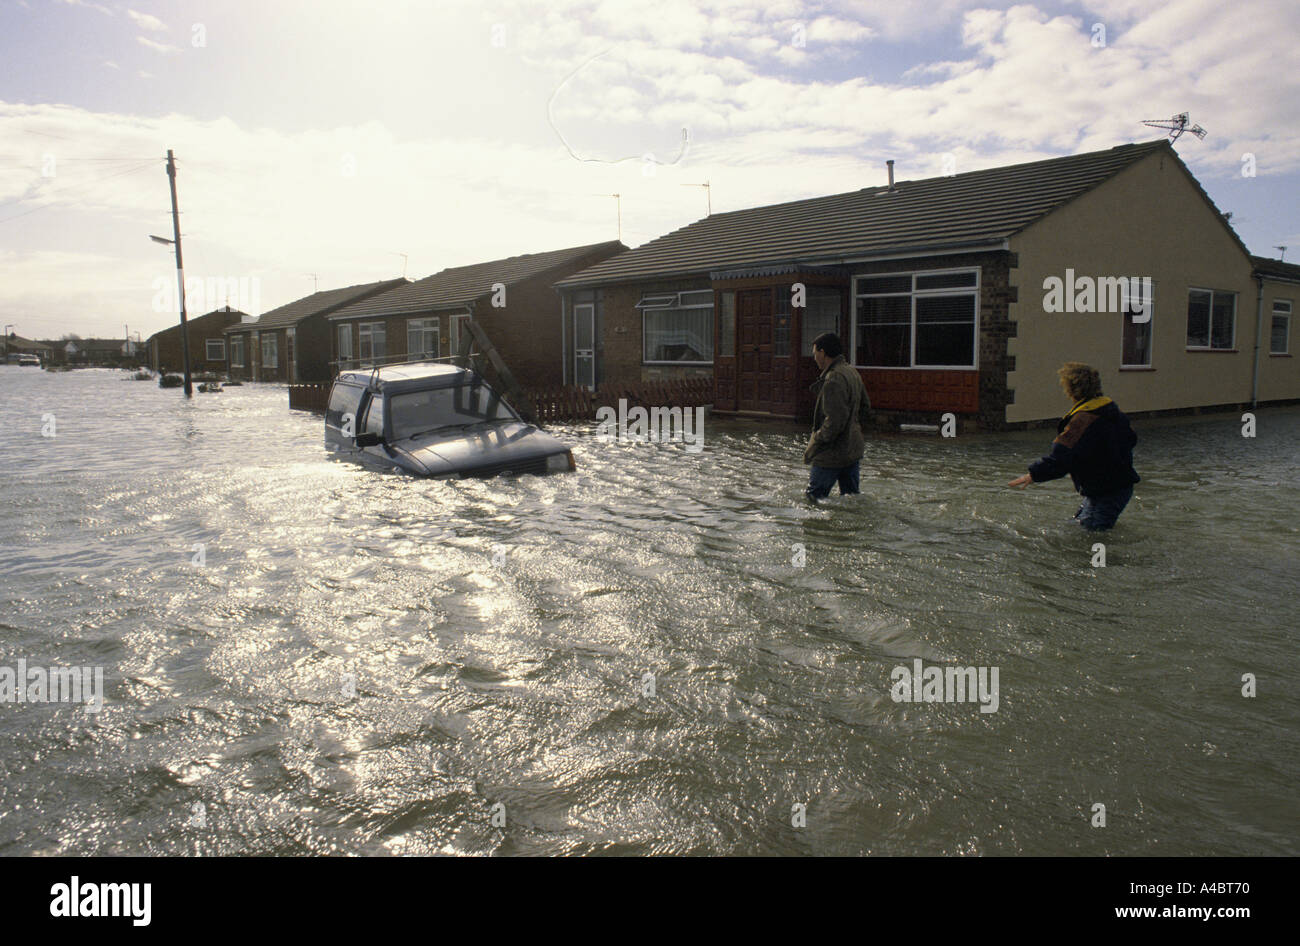 Wading to their waterlogged car after Hurricane winds cause the sea wall at Towyn, North Wales to break, flooding Stock Photo